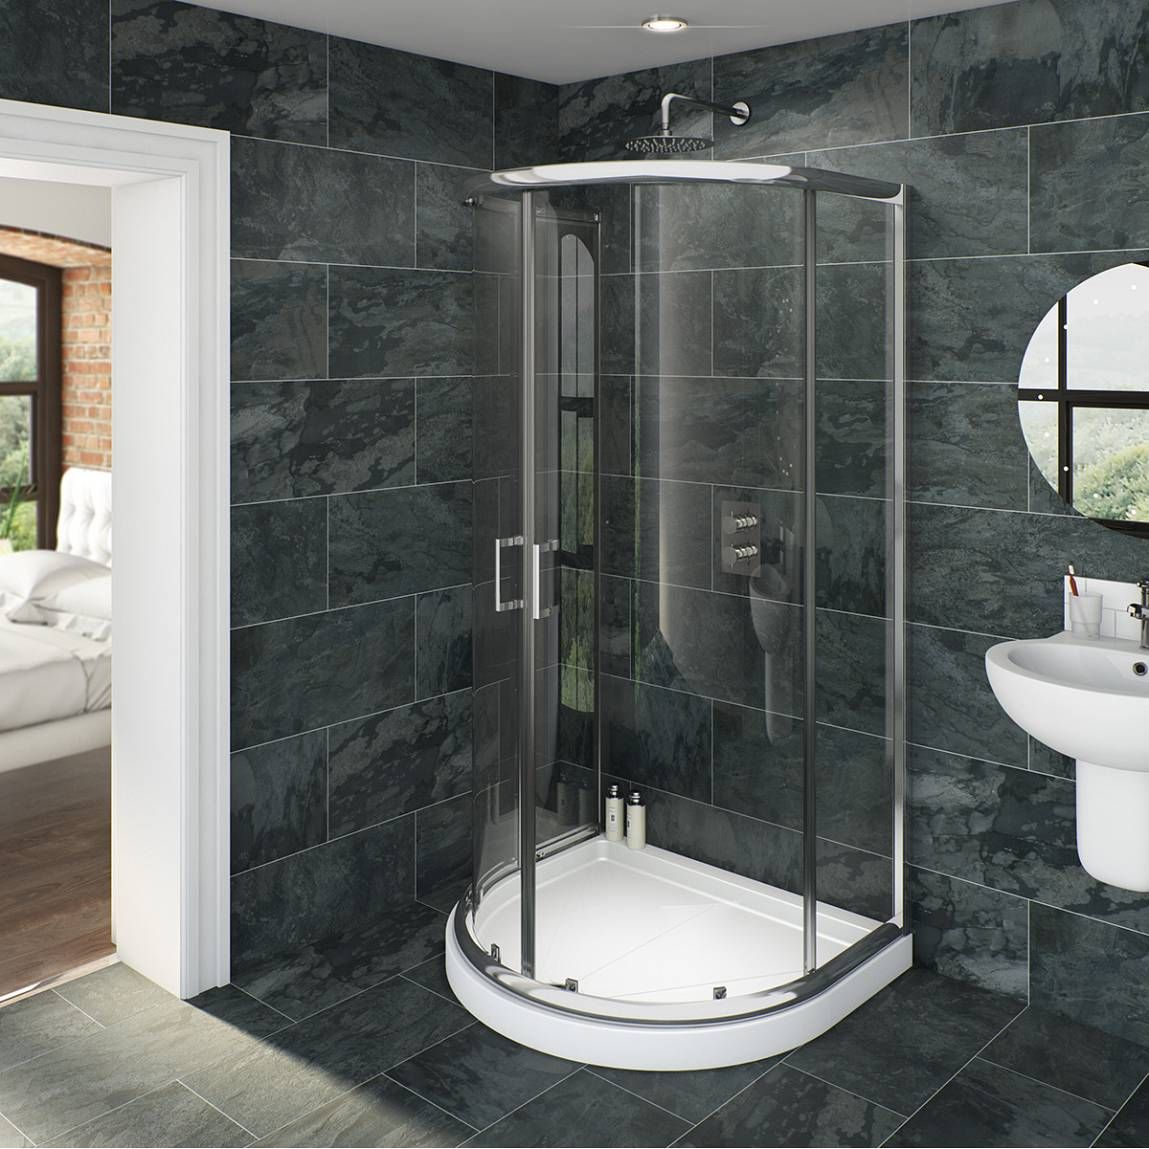 V6 D Shaped Shower Enclosure - Now £219.99. http://www.victoriaplumb ...